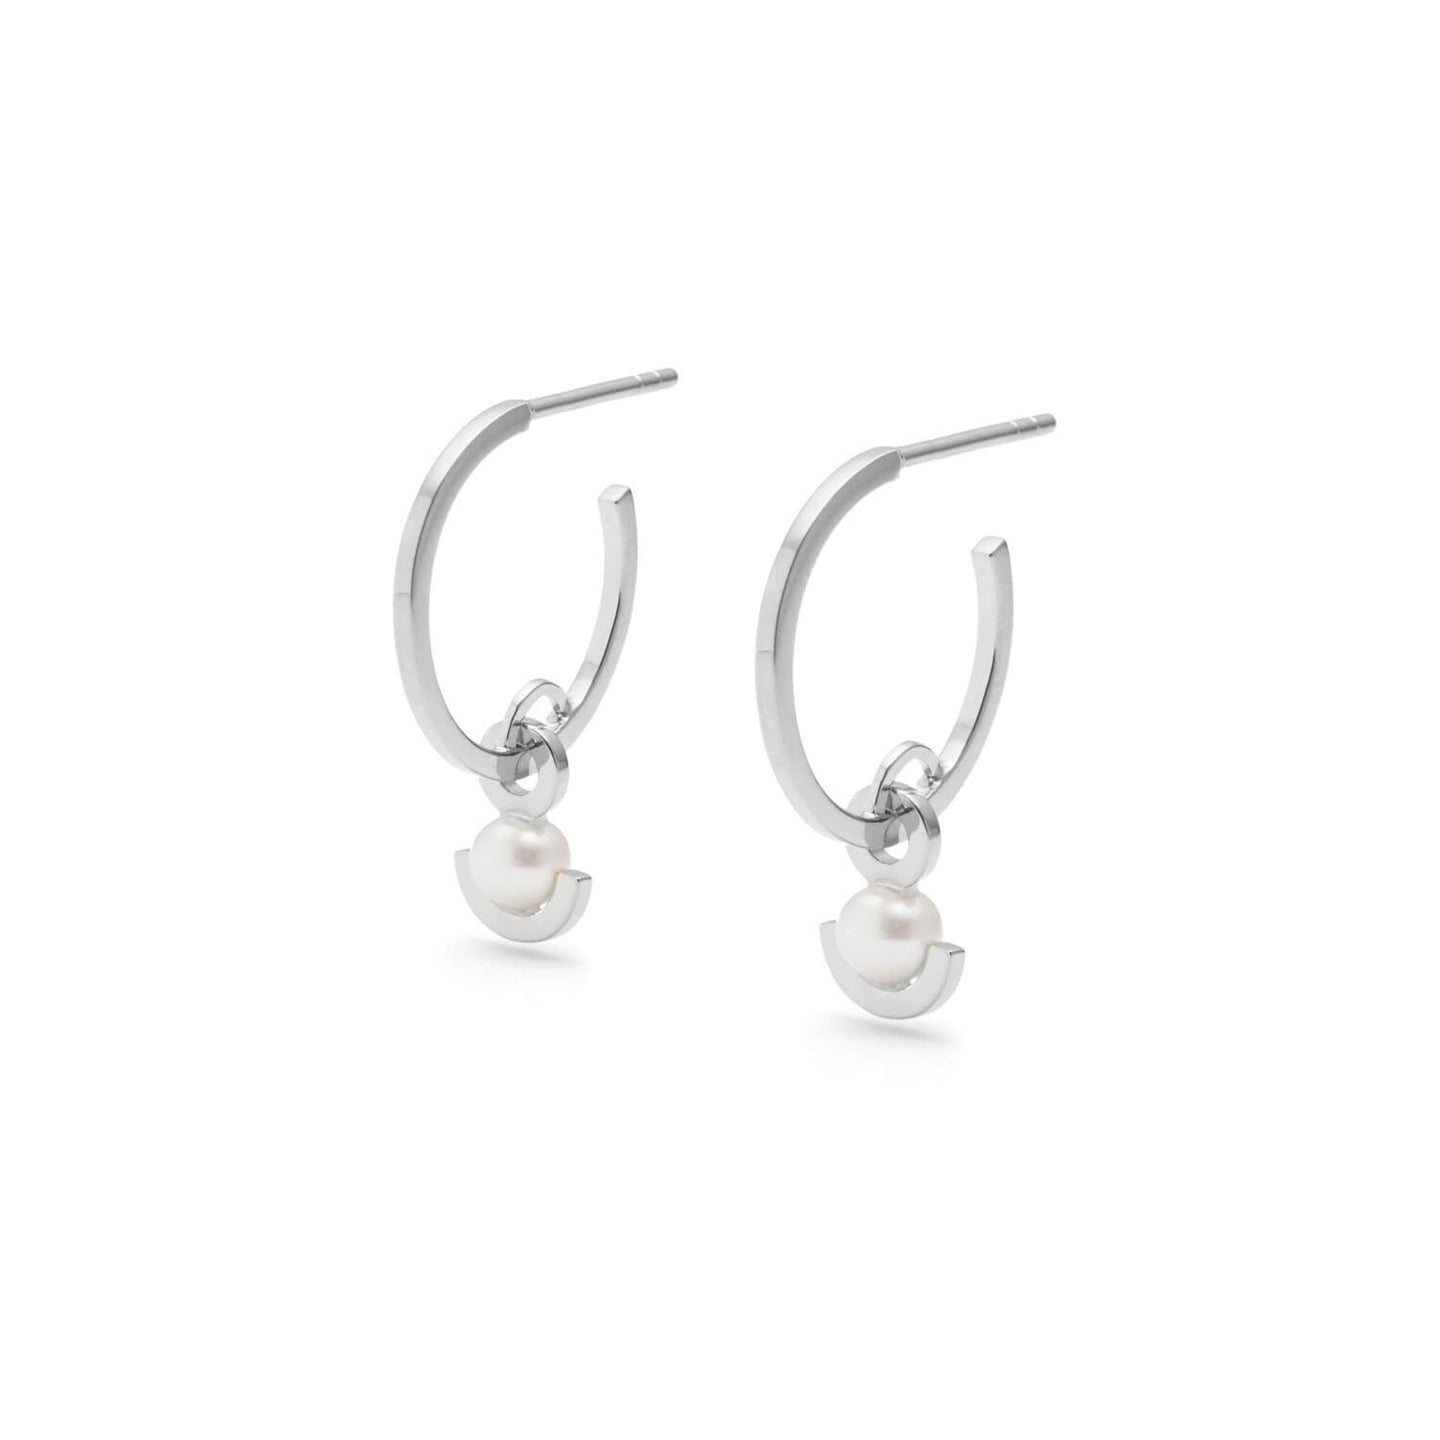 Silver Half Moon Pearl Earrings | Sterling Silver | Motley x Anonymous | Product Shot 1